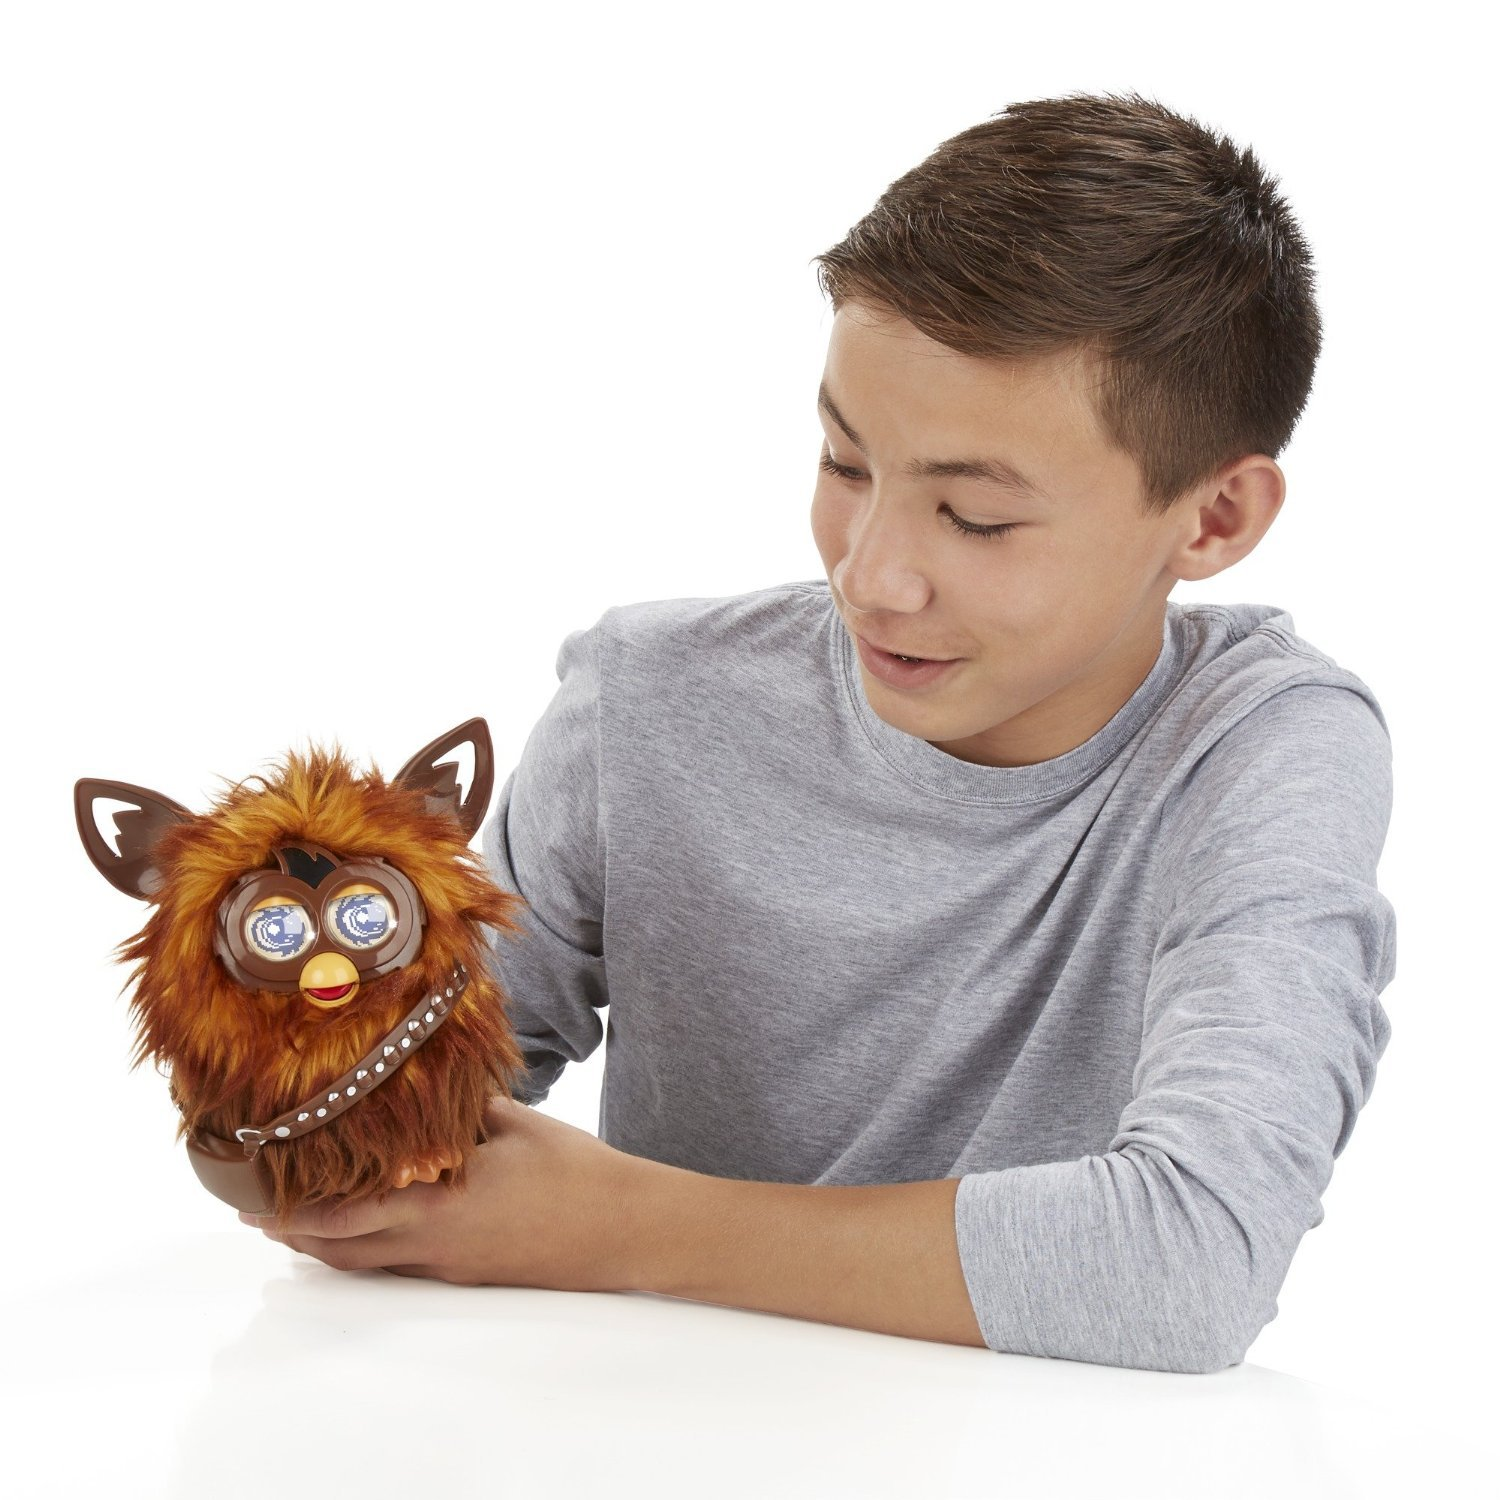 Image 4 of Star Wars Furby Furbacca Interactive Creature, Hasbro, 6+